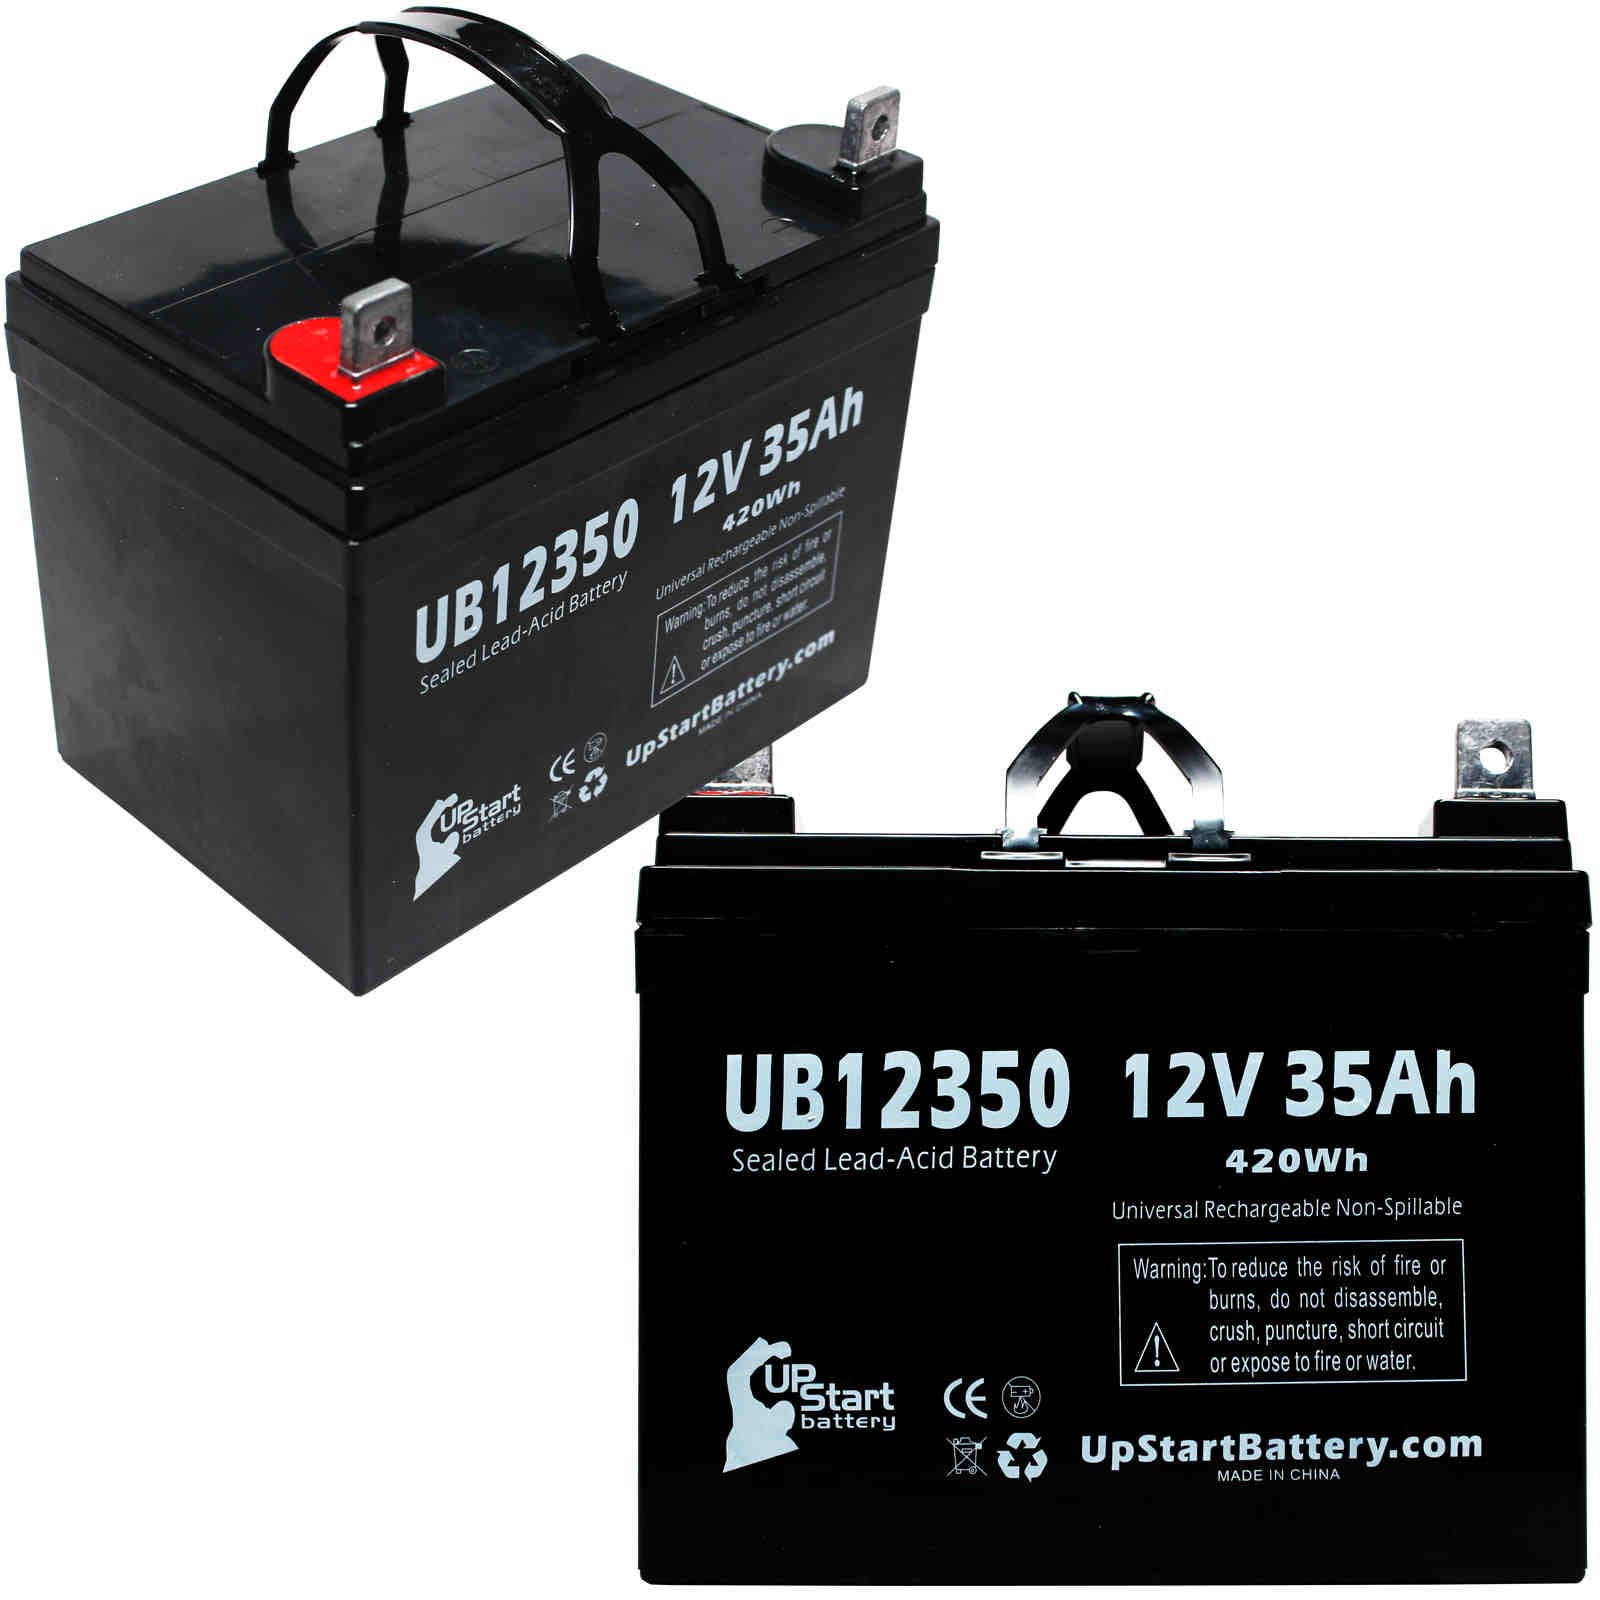 2x Pack - Sears 502.25617 Battery Replacement - UB12350 Universal Sealed Lead Acid Battery (12V, 35Ah, 35000mAh, L1 Terminal, AGM, SLA) - image 4 of 4